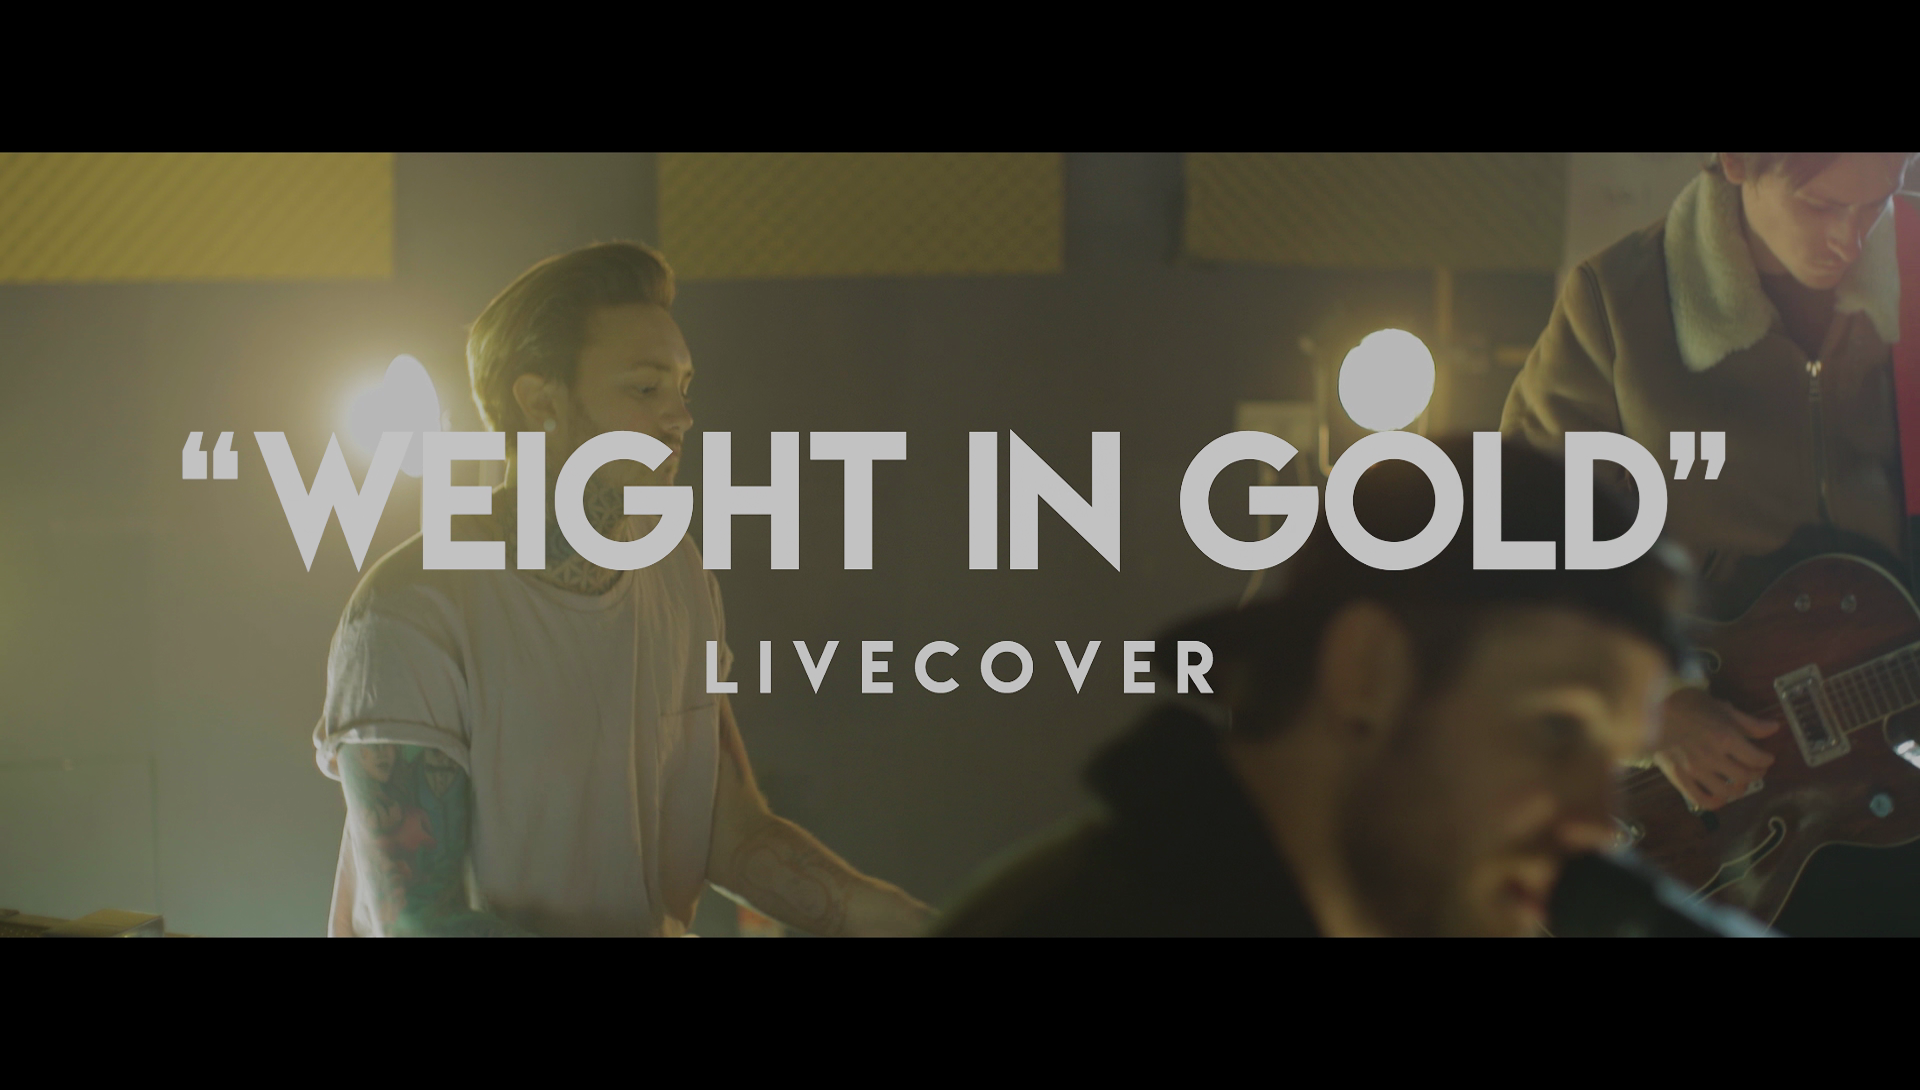 WEIGHT IN GOLD  - CASCO BAY - LIVE BAND PERFORMANCE